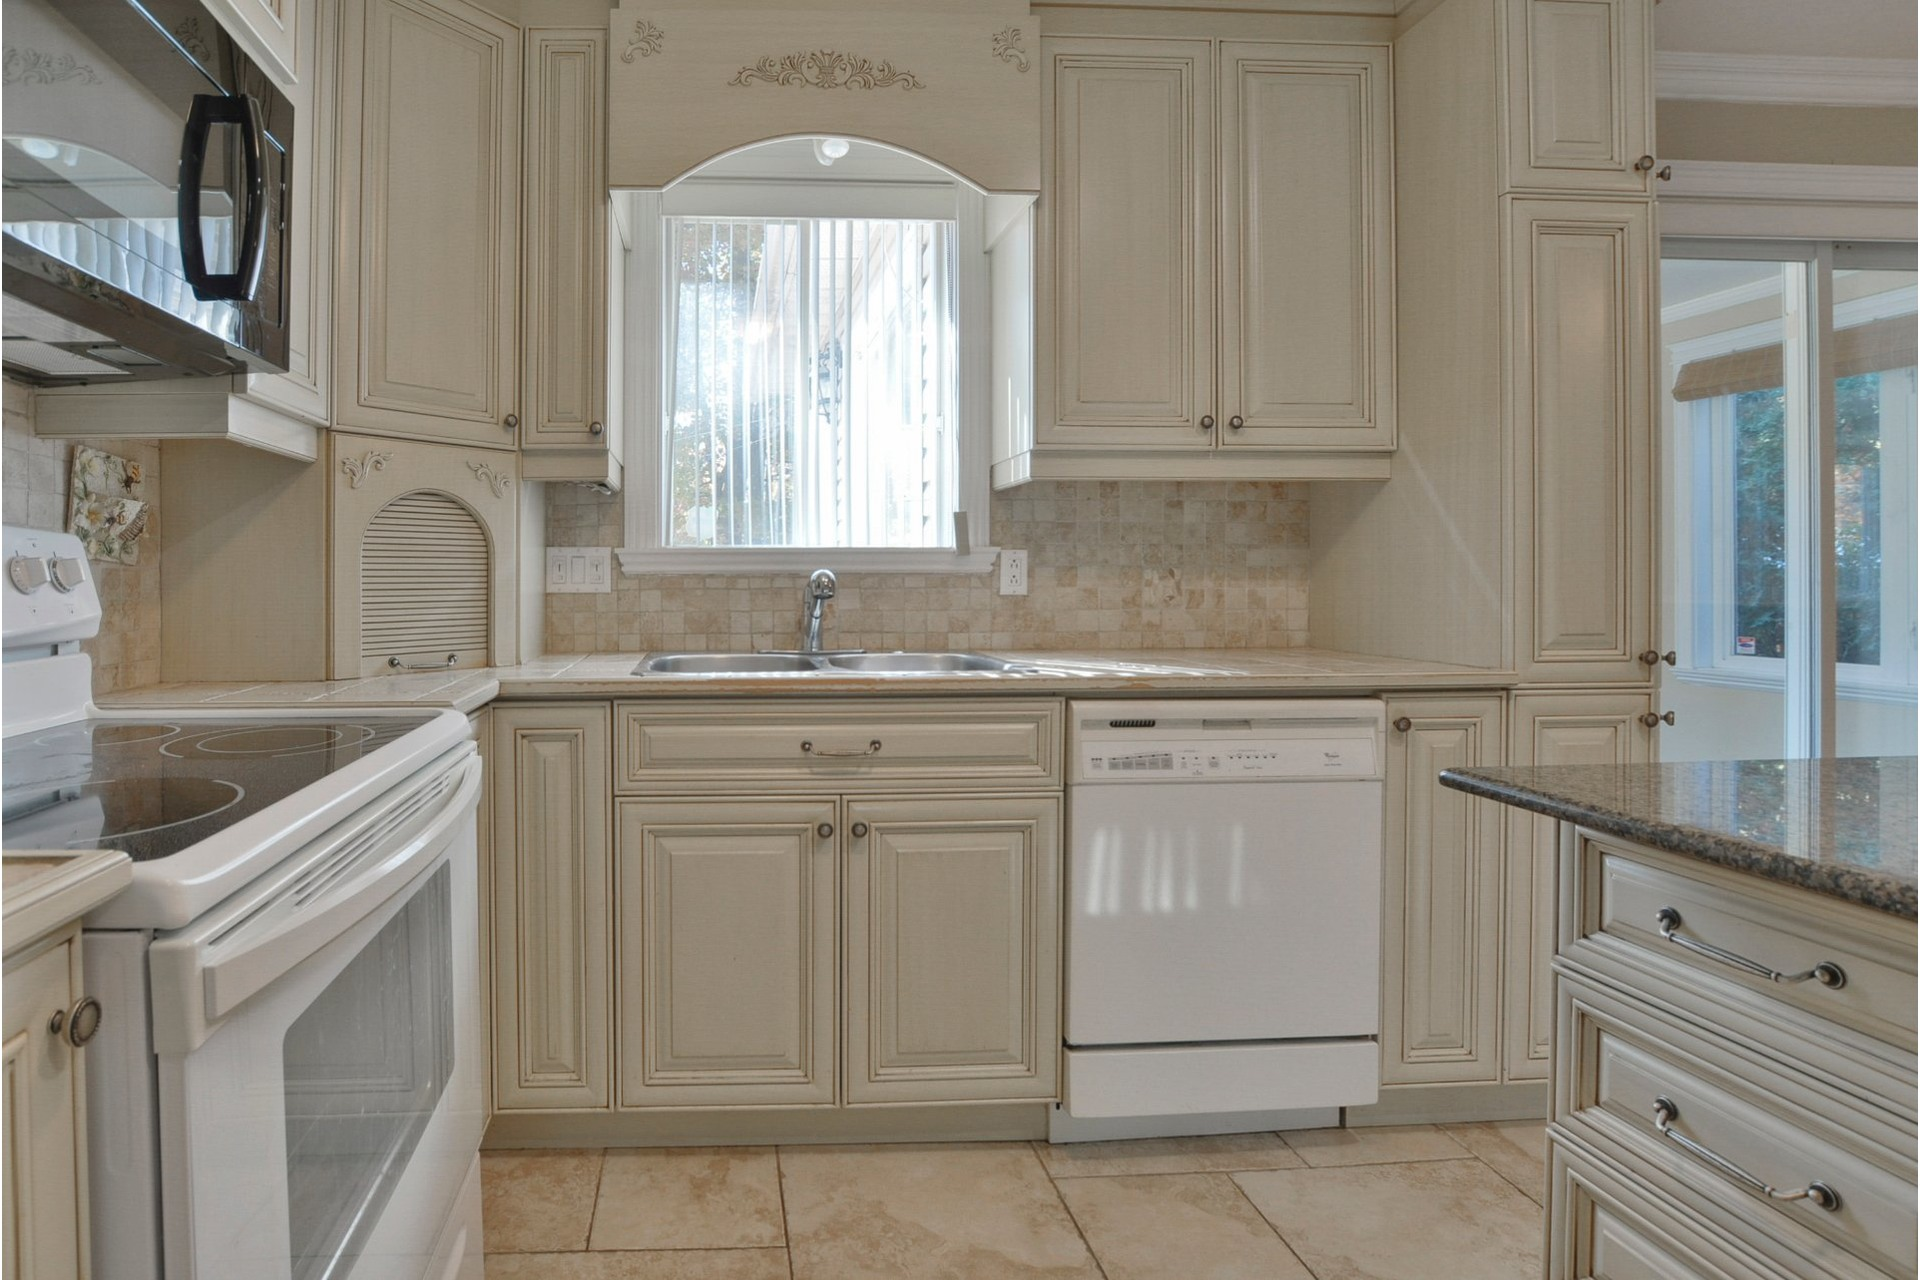 image 7 - House For sale Mascouche - 11 rooms